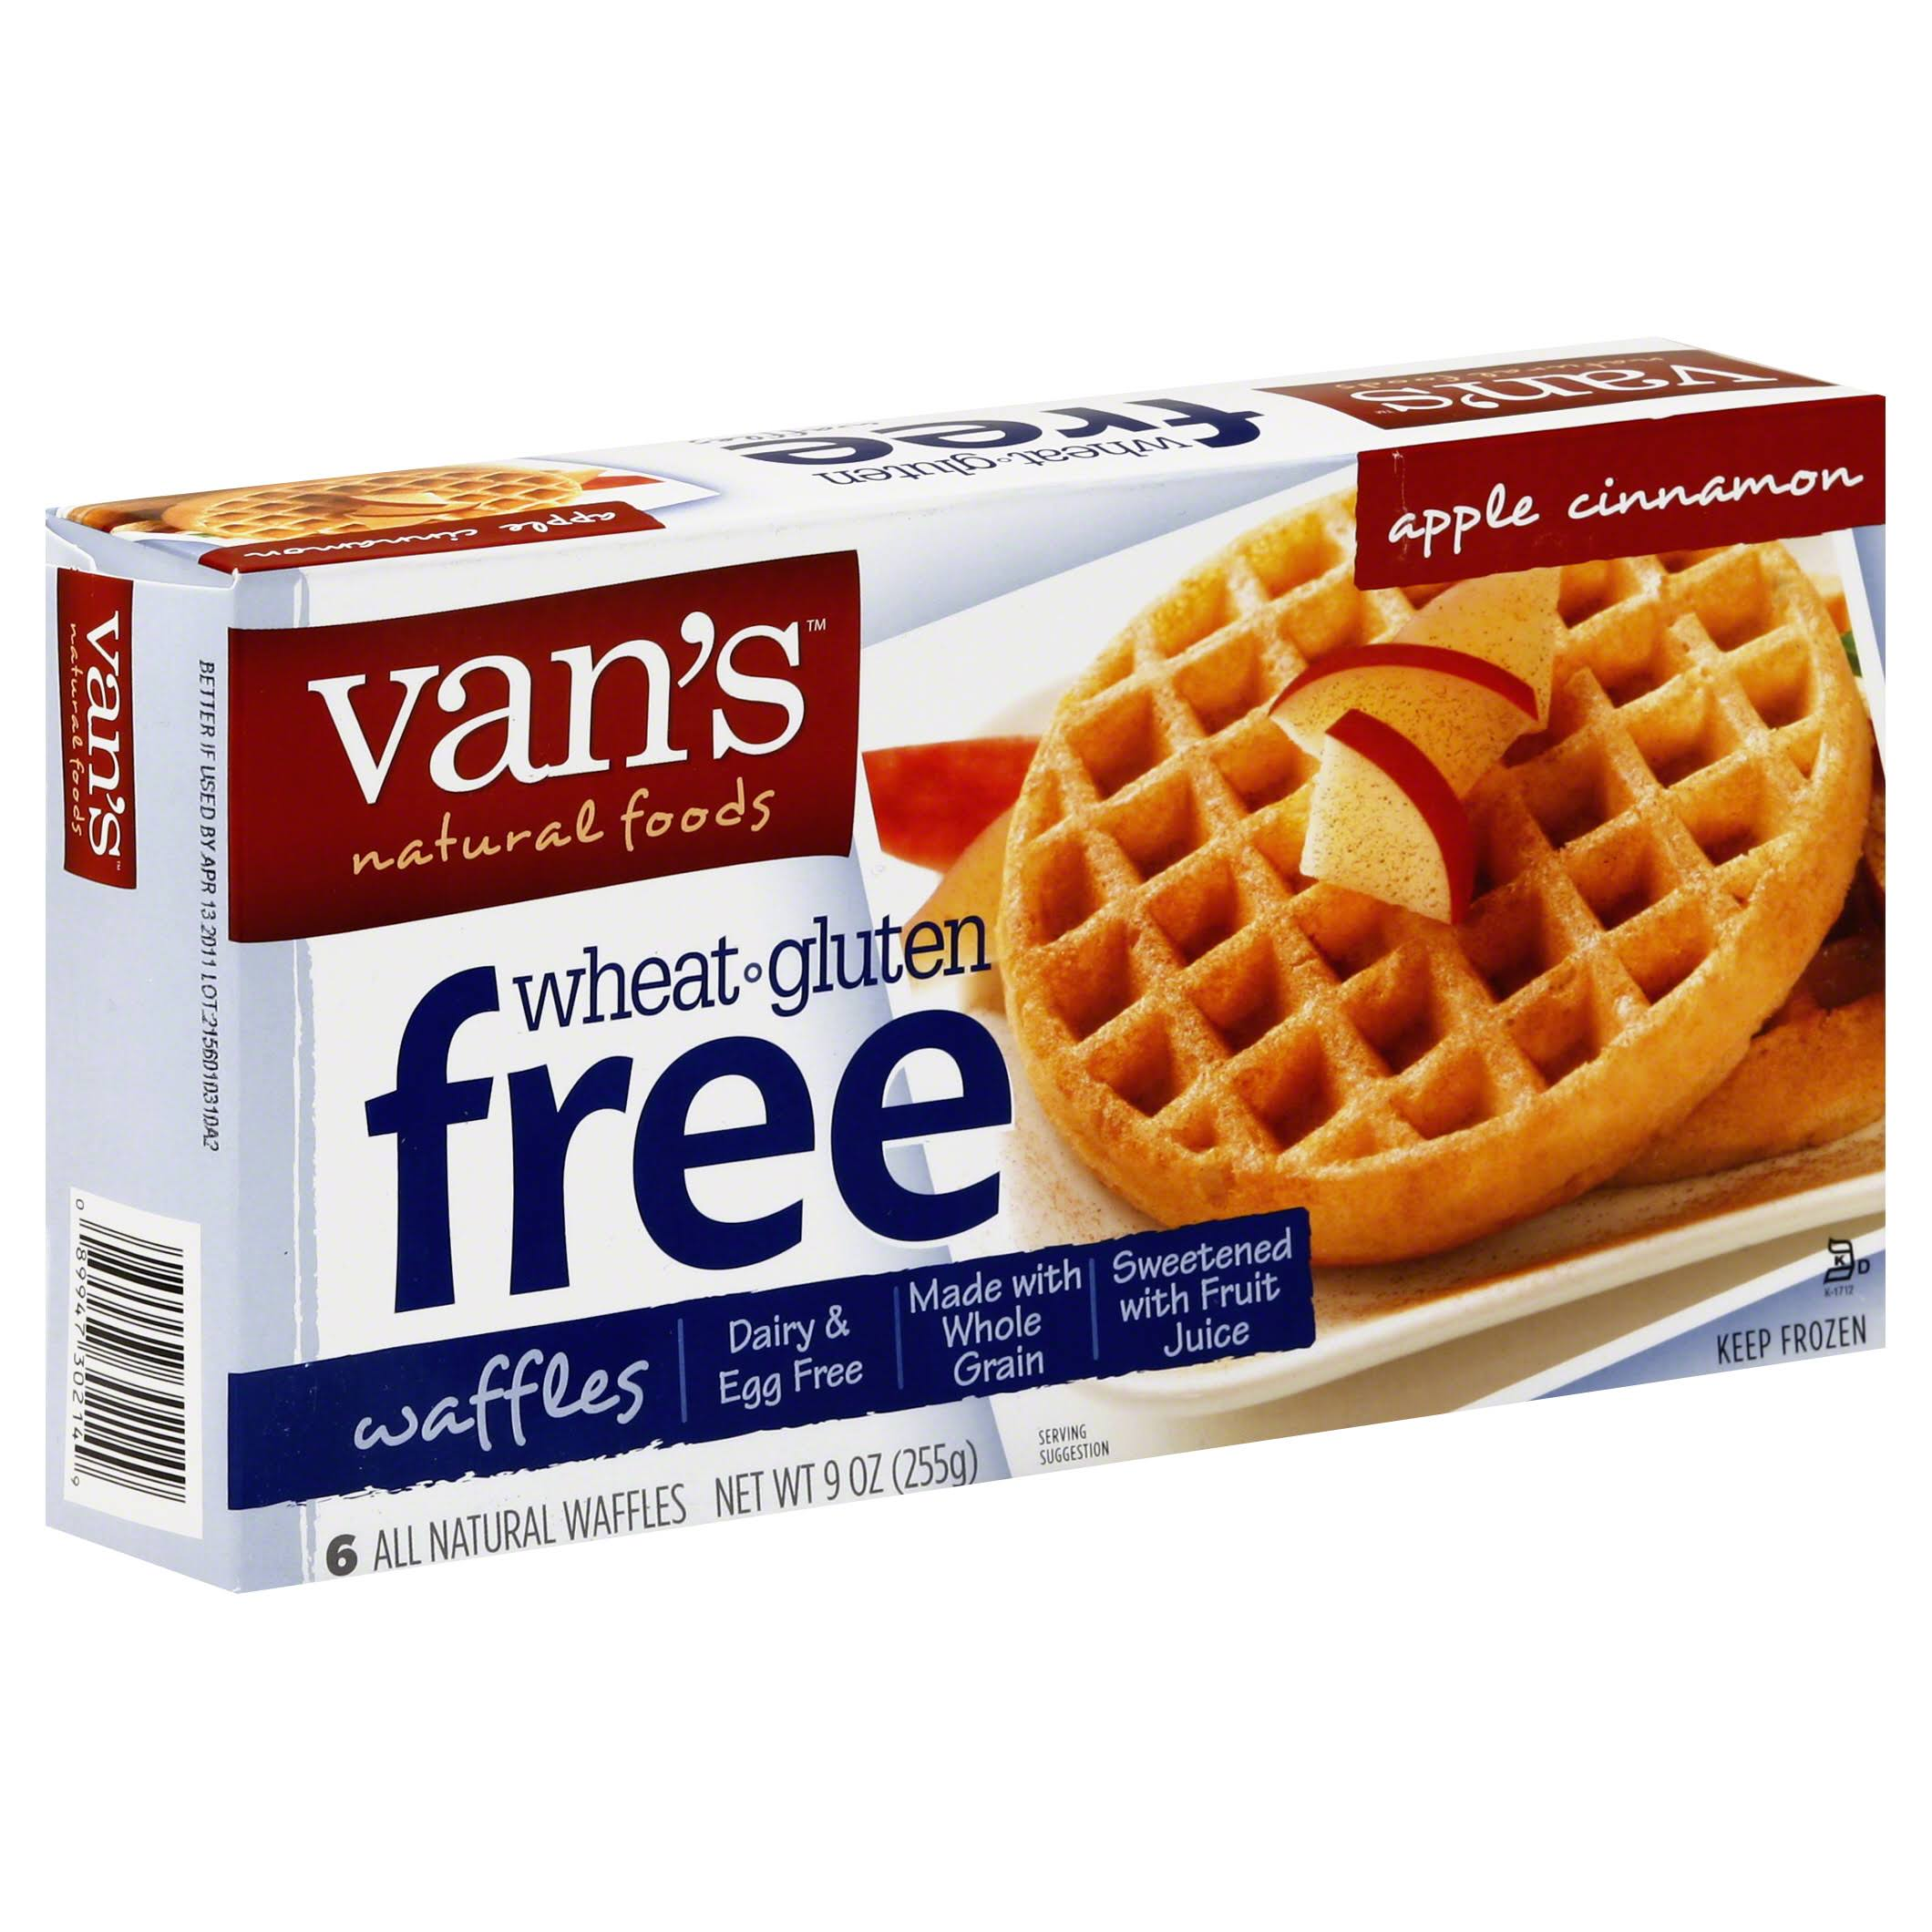 Van's Gluten Free Whole Grain Brown Rice Waffles - Apple Cinnamon, 9oz